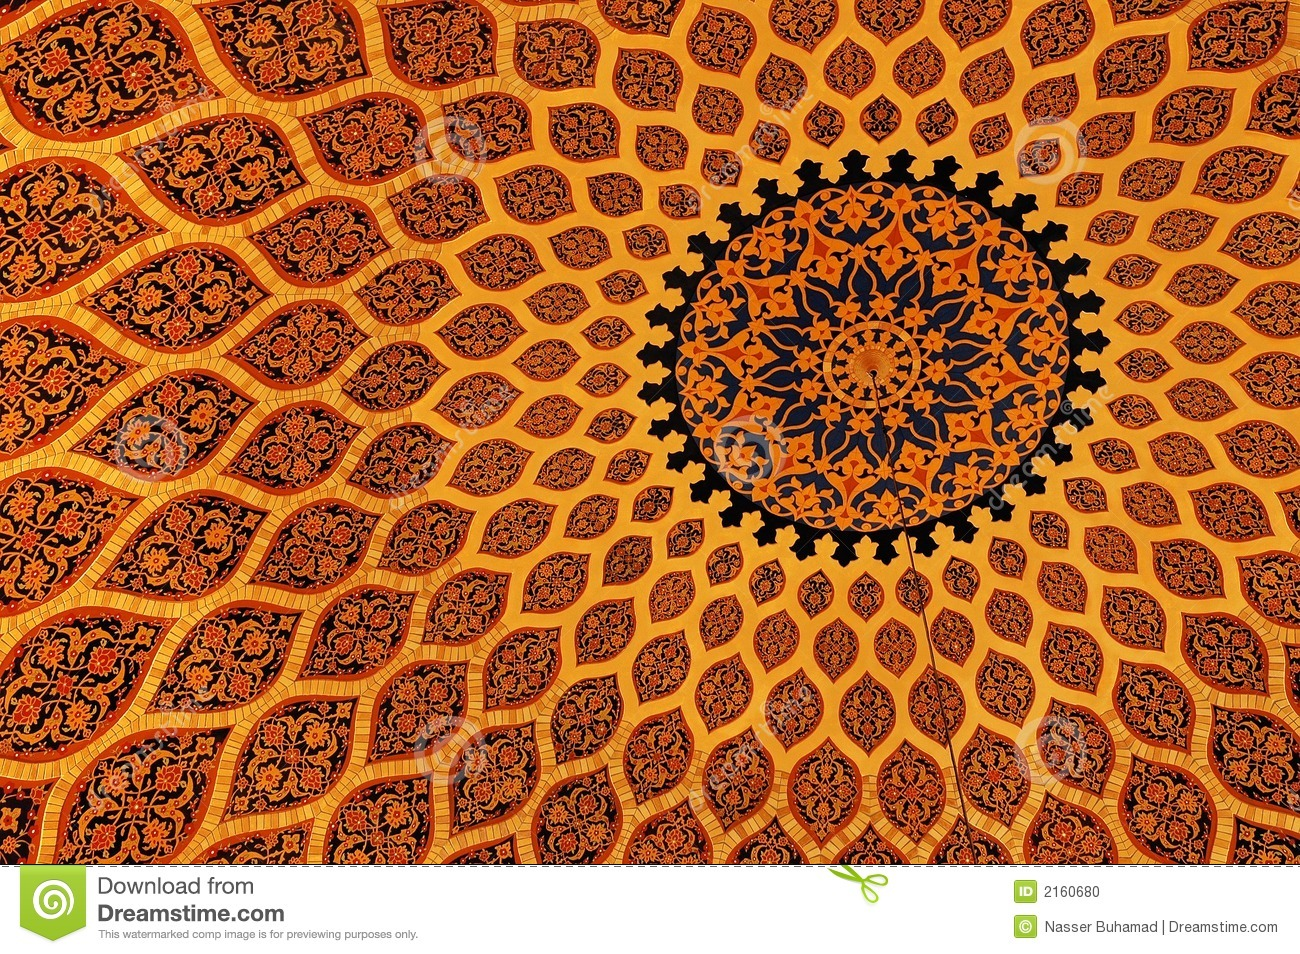 Islamic texture stock photo Image of repetitive textures